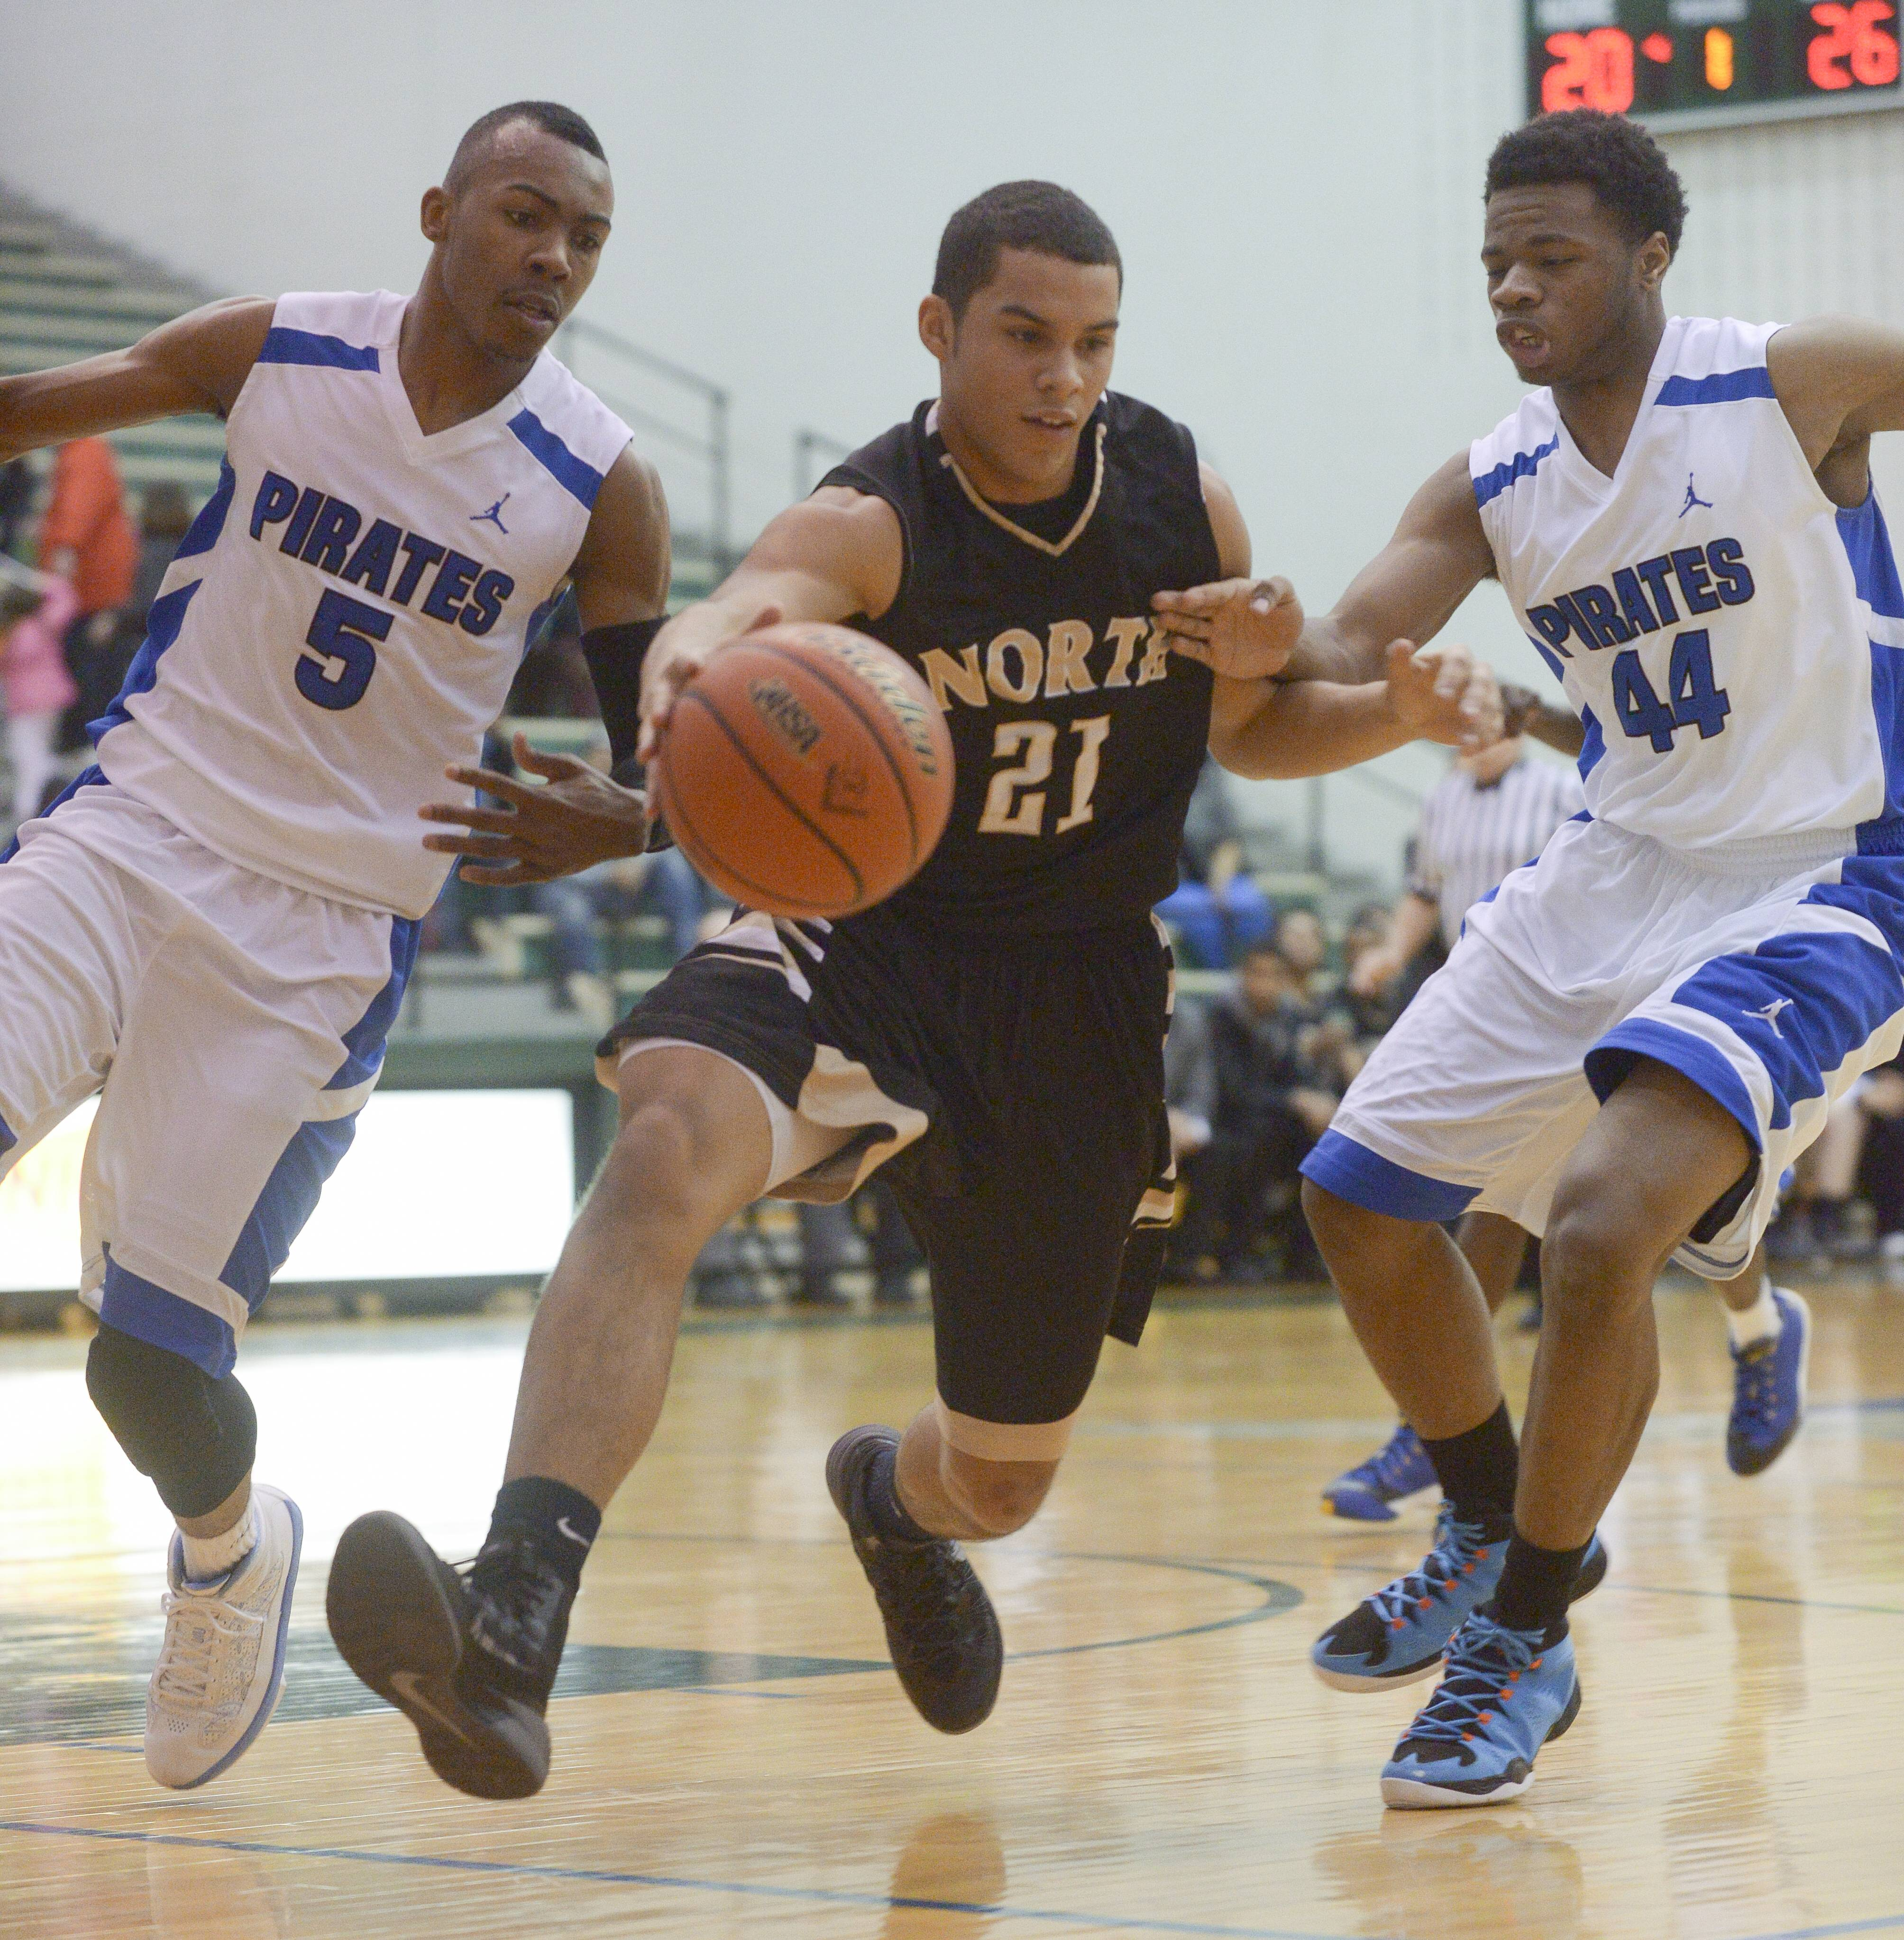 Glenbard North's Kendall Holbert drives the ball through Proviso East's Jevon Carter and Josh Smith.